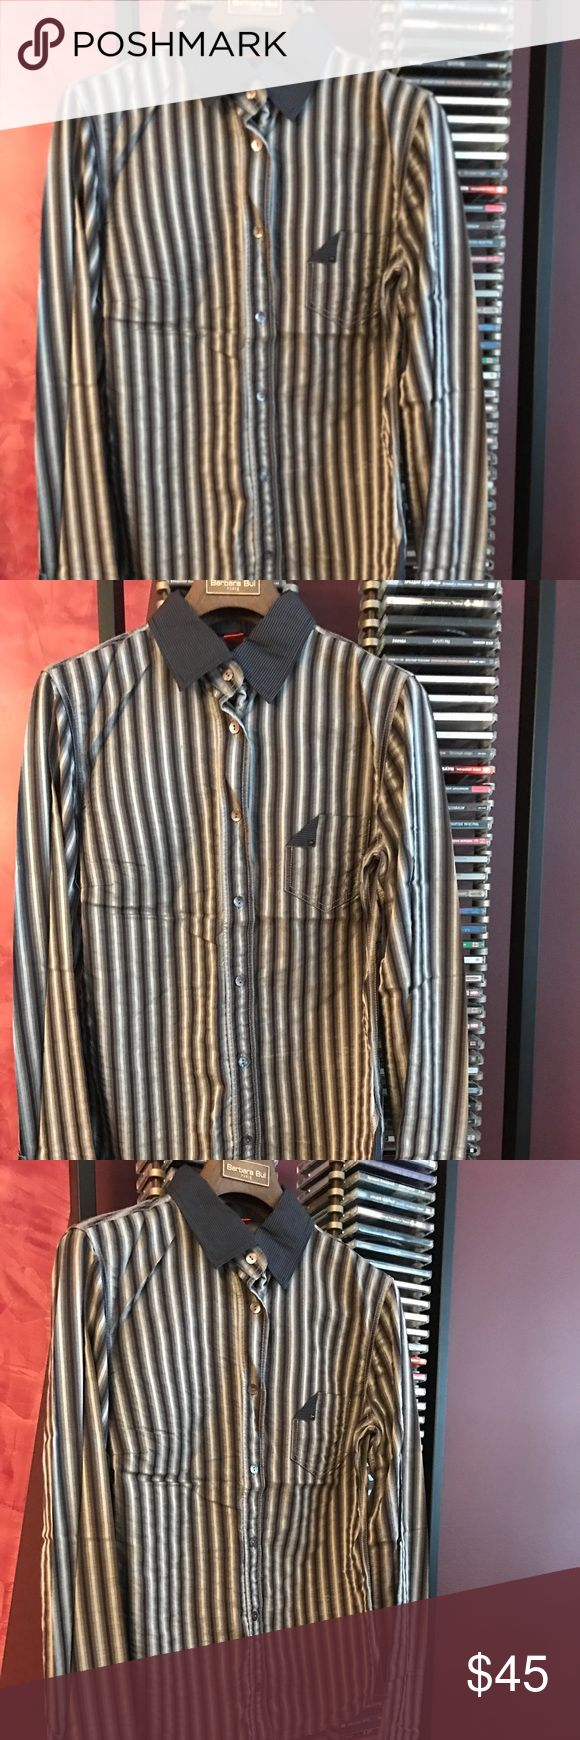 Hugo Boss Fitted Button Down Long Sleeve Shirt Boss by Hugo Boss Stripe Shirt Size S Perfect condition with absolutely no damages, but may have been worn on one or two times. Fitted Button Down Long Sleeve Shirt Fabric Content: 69% Cotton 31% Viscose